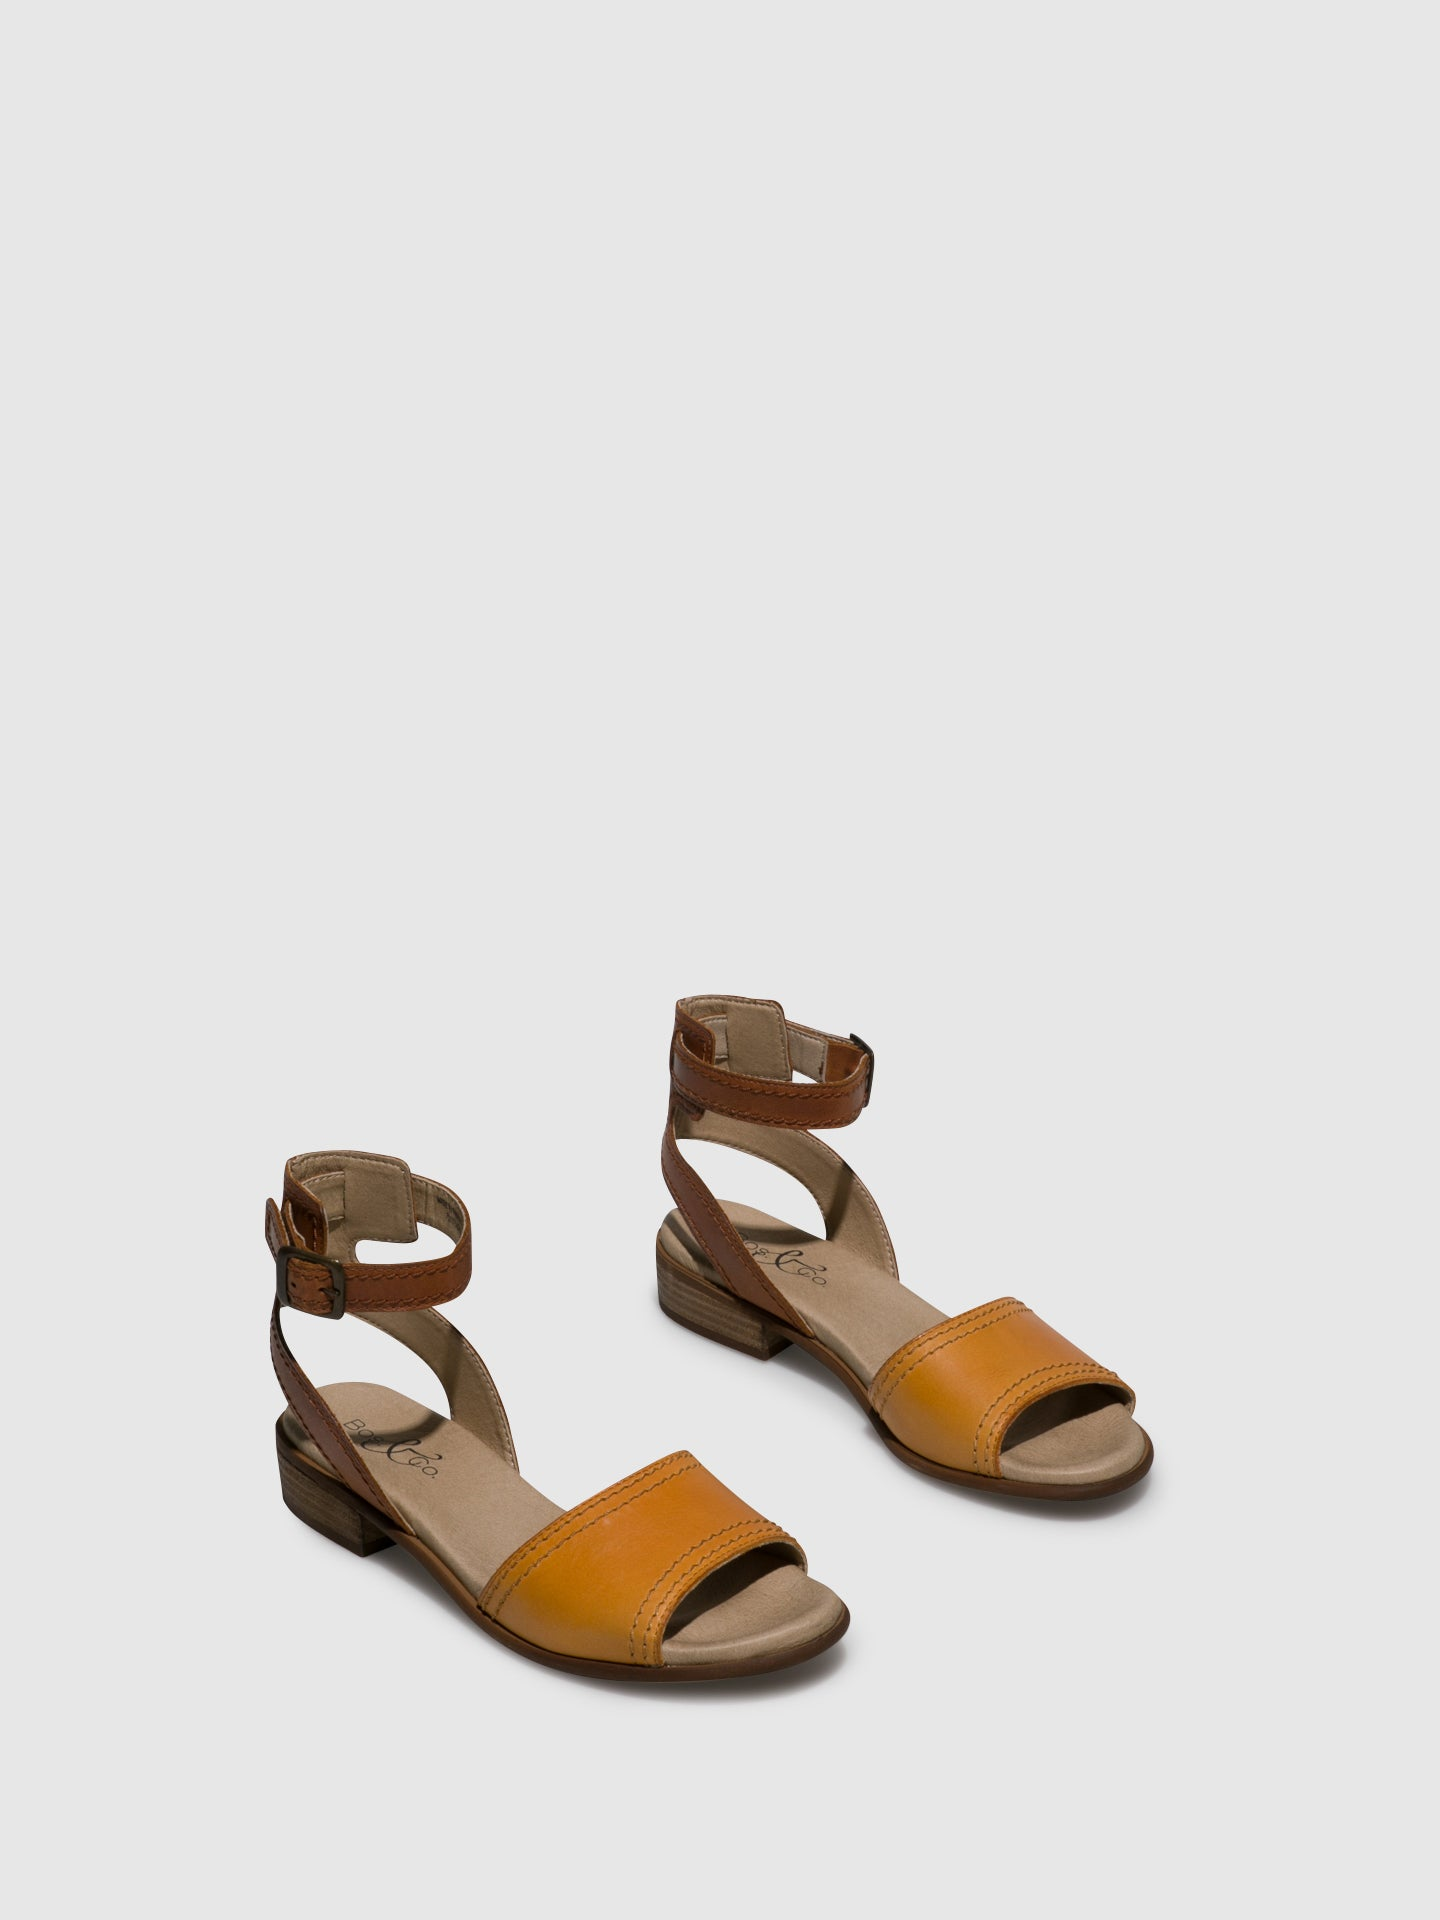 Bos&Co Yellow Tan Ankle Strap Sandals